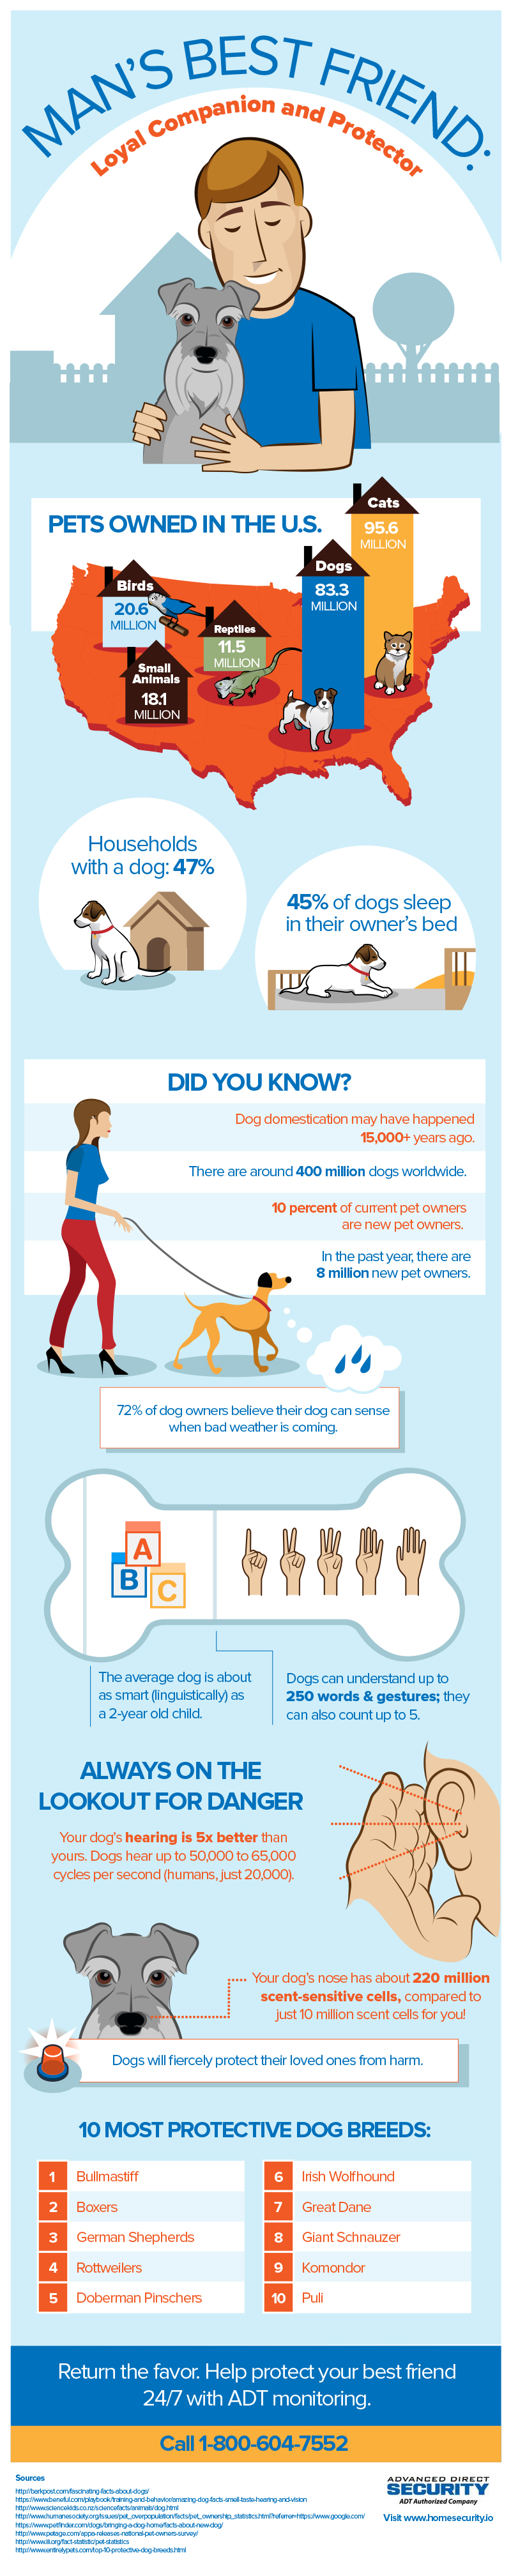 Dog Man's Best Friend Infographic